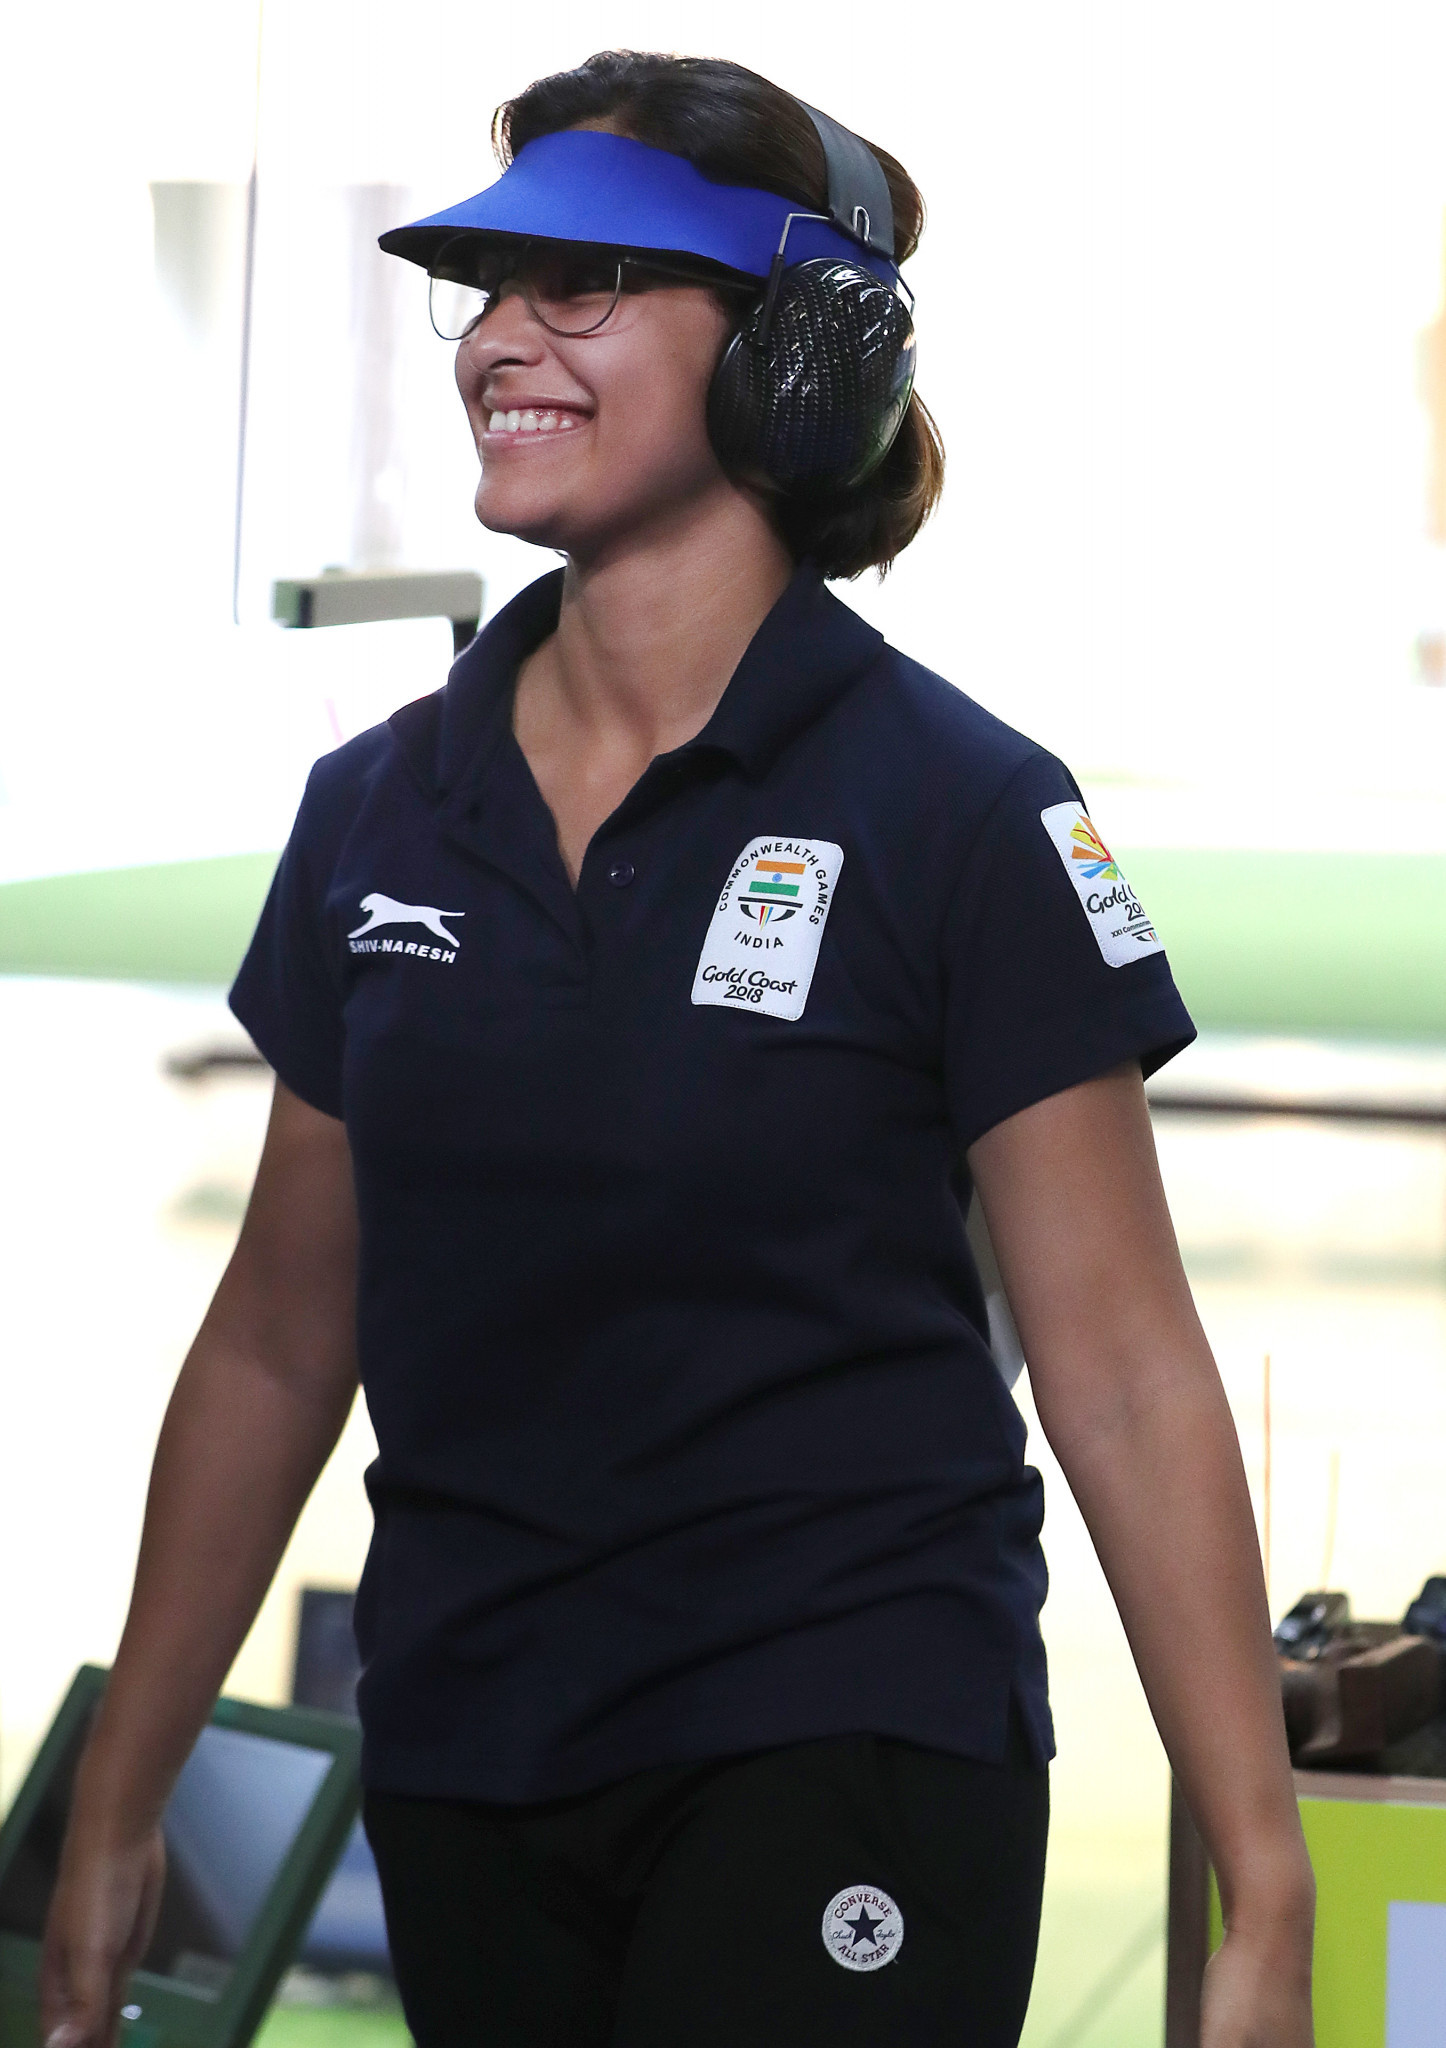 India's Heena Sidhu came out on top in the women's 25m pistol event ©Getty Images